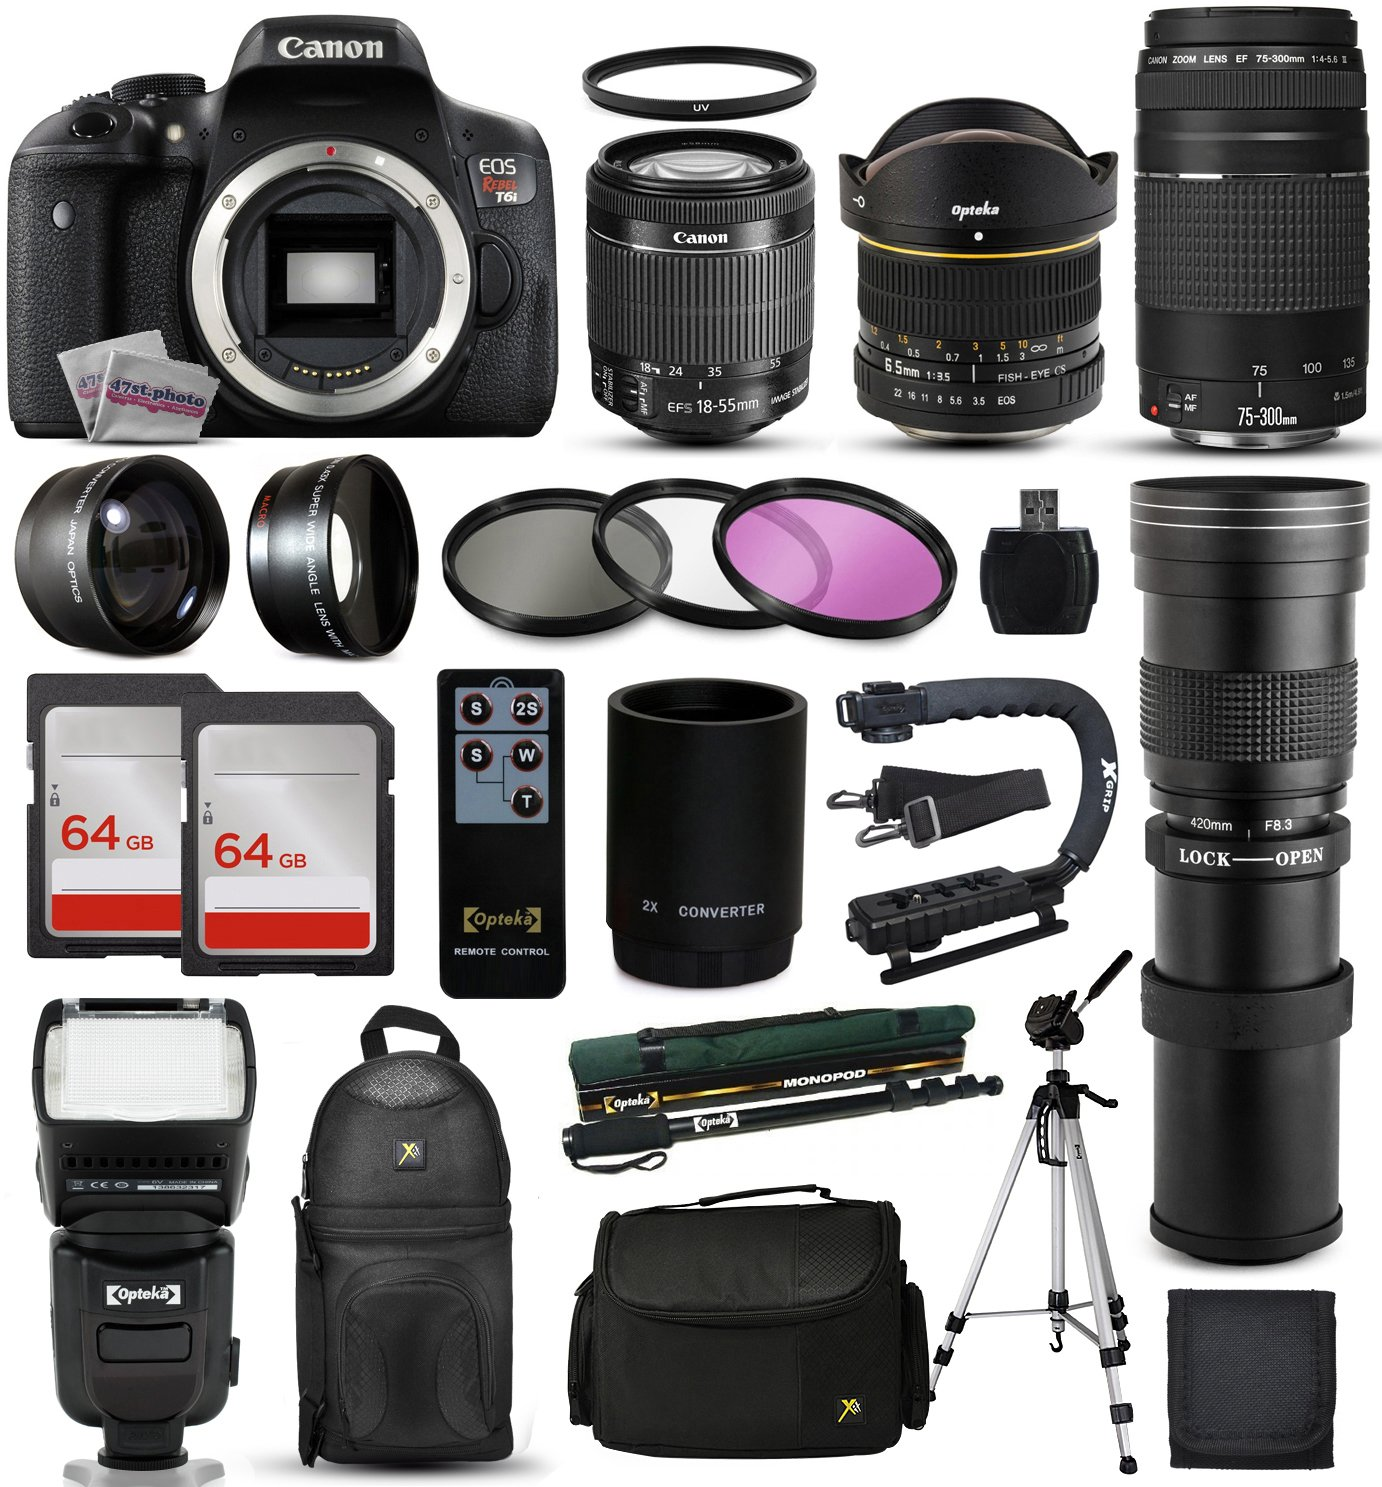 Canon EOS Rebel T6i DSLR Digital Camera + 18-55mm IS STM + 6.5mm Fisheye + 75-300mm III + 420-1600mm Lens + Filters + 128GB Memory + i-TTL Autofocus Flash + Backpack + Case + 70' Tripod + 67' Monopod 47th Street Photo CNT6I4LENS42075300K2